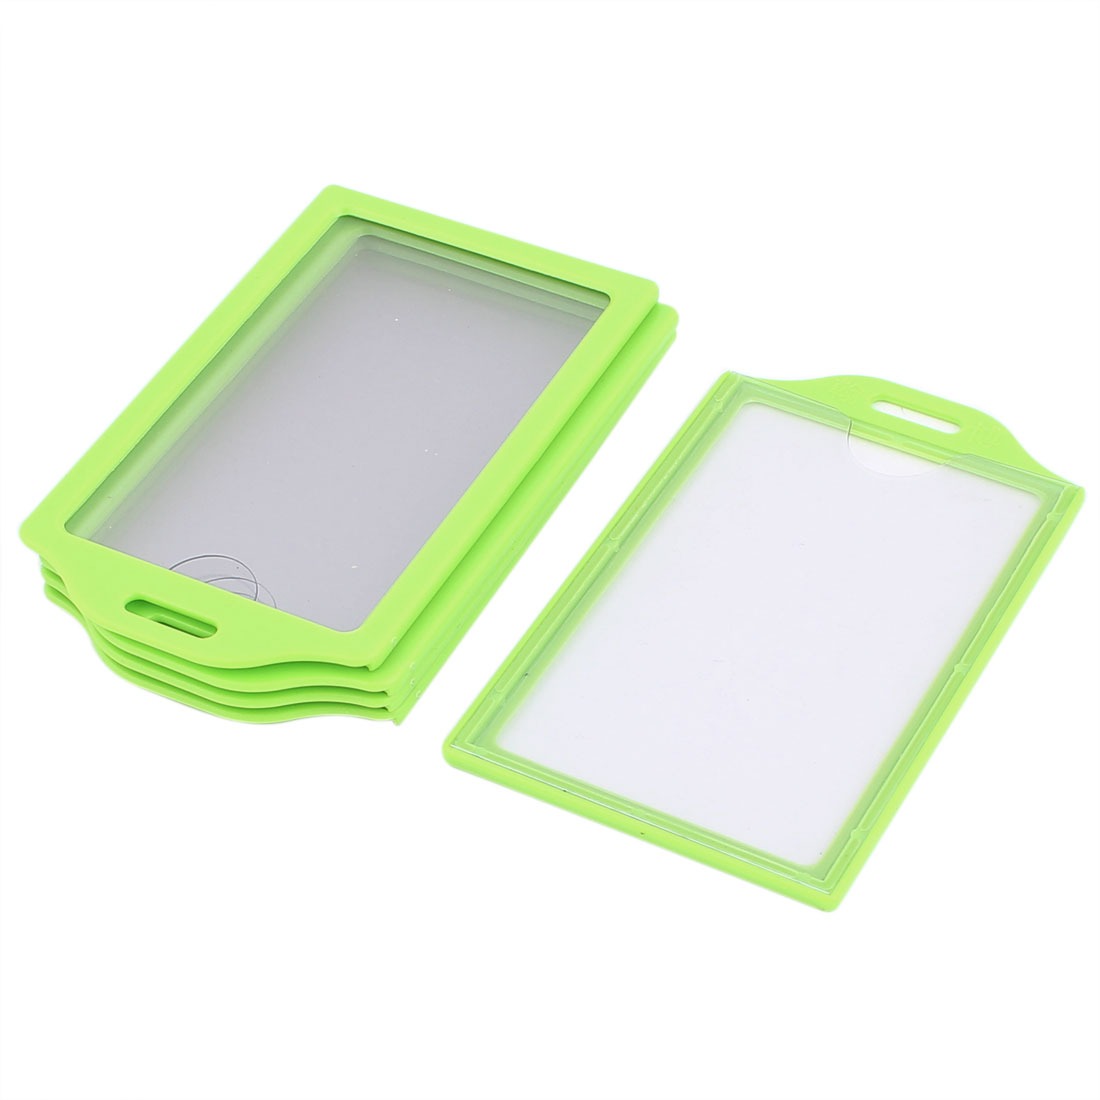 School Office Plastic Vertical Business ID Card Badge Holder Green Clear 5pcs